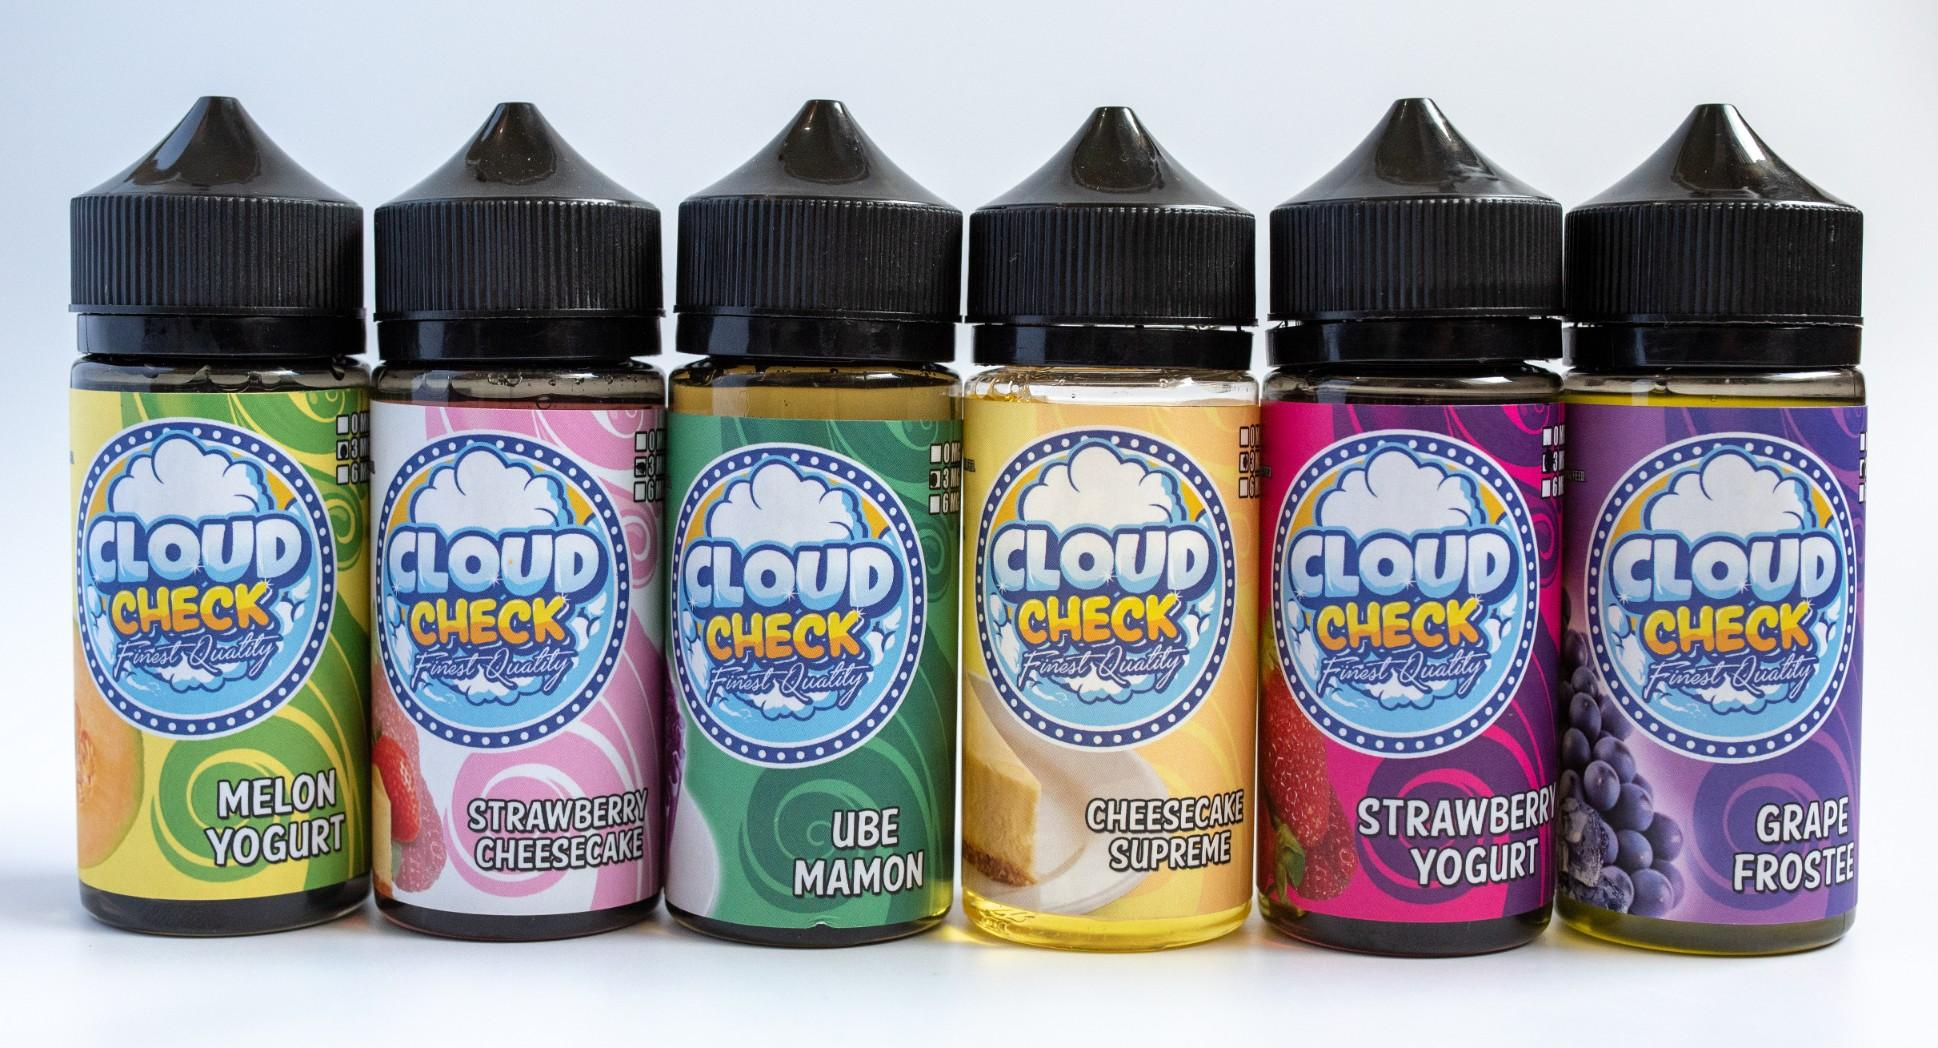 Vape Juice for sale - E-Juice prices, brands & specs in Philippines | Lazada.com.ph